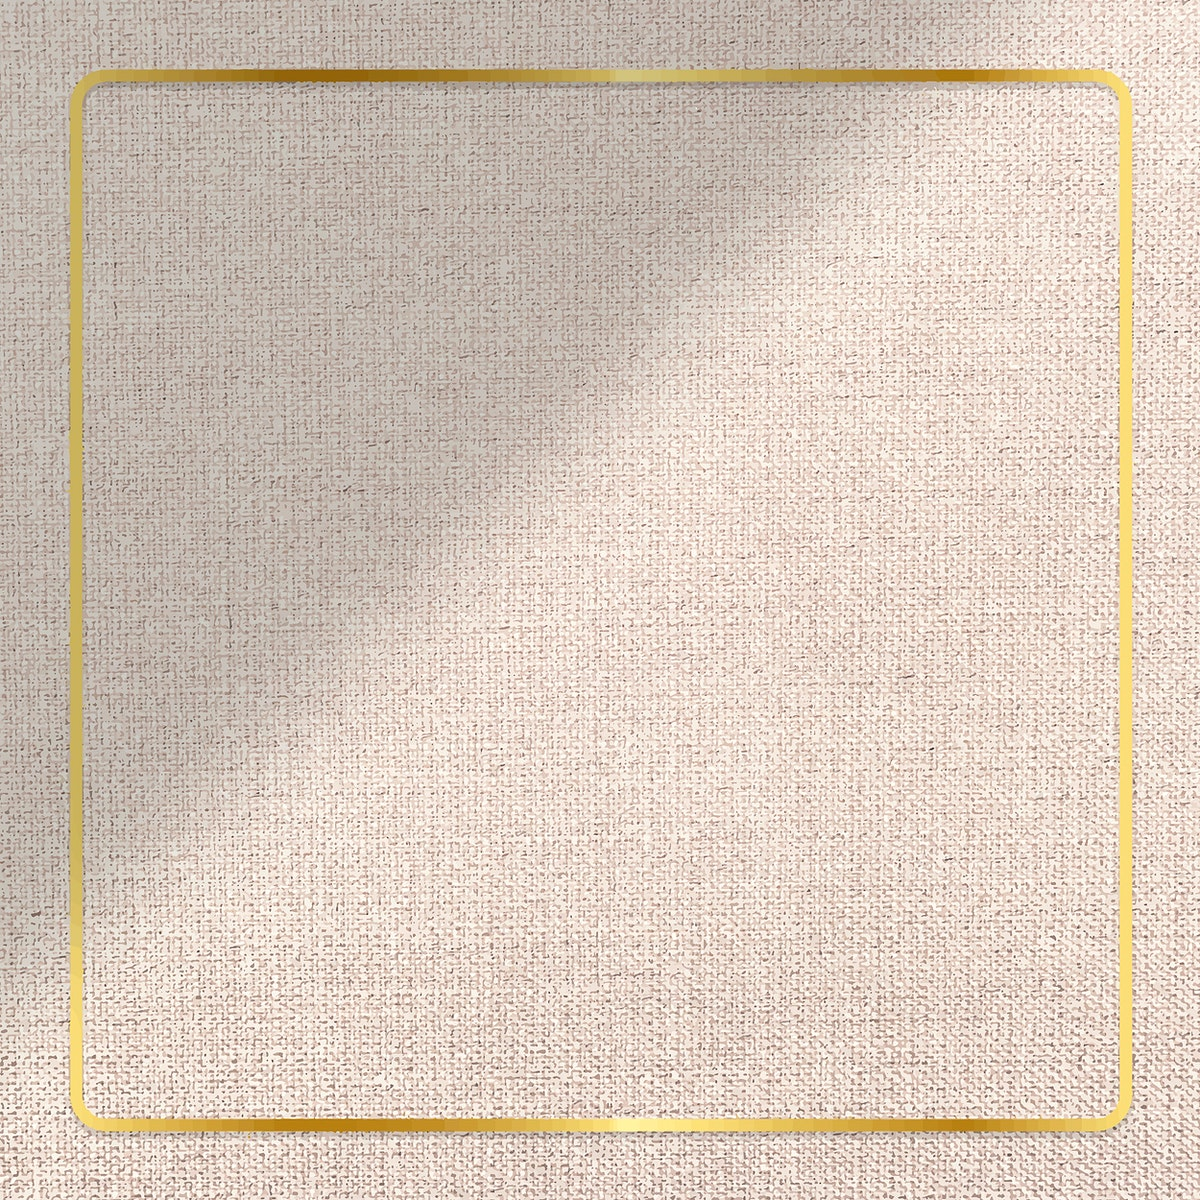 Gold frame on brown fabric textured background vector